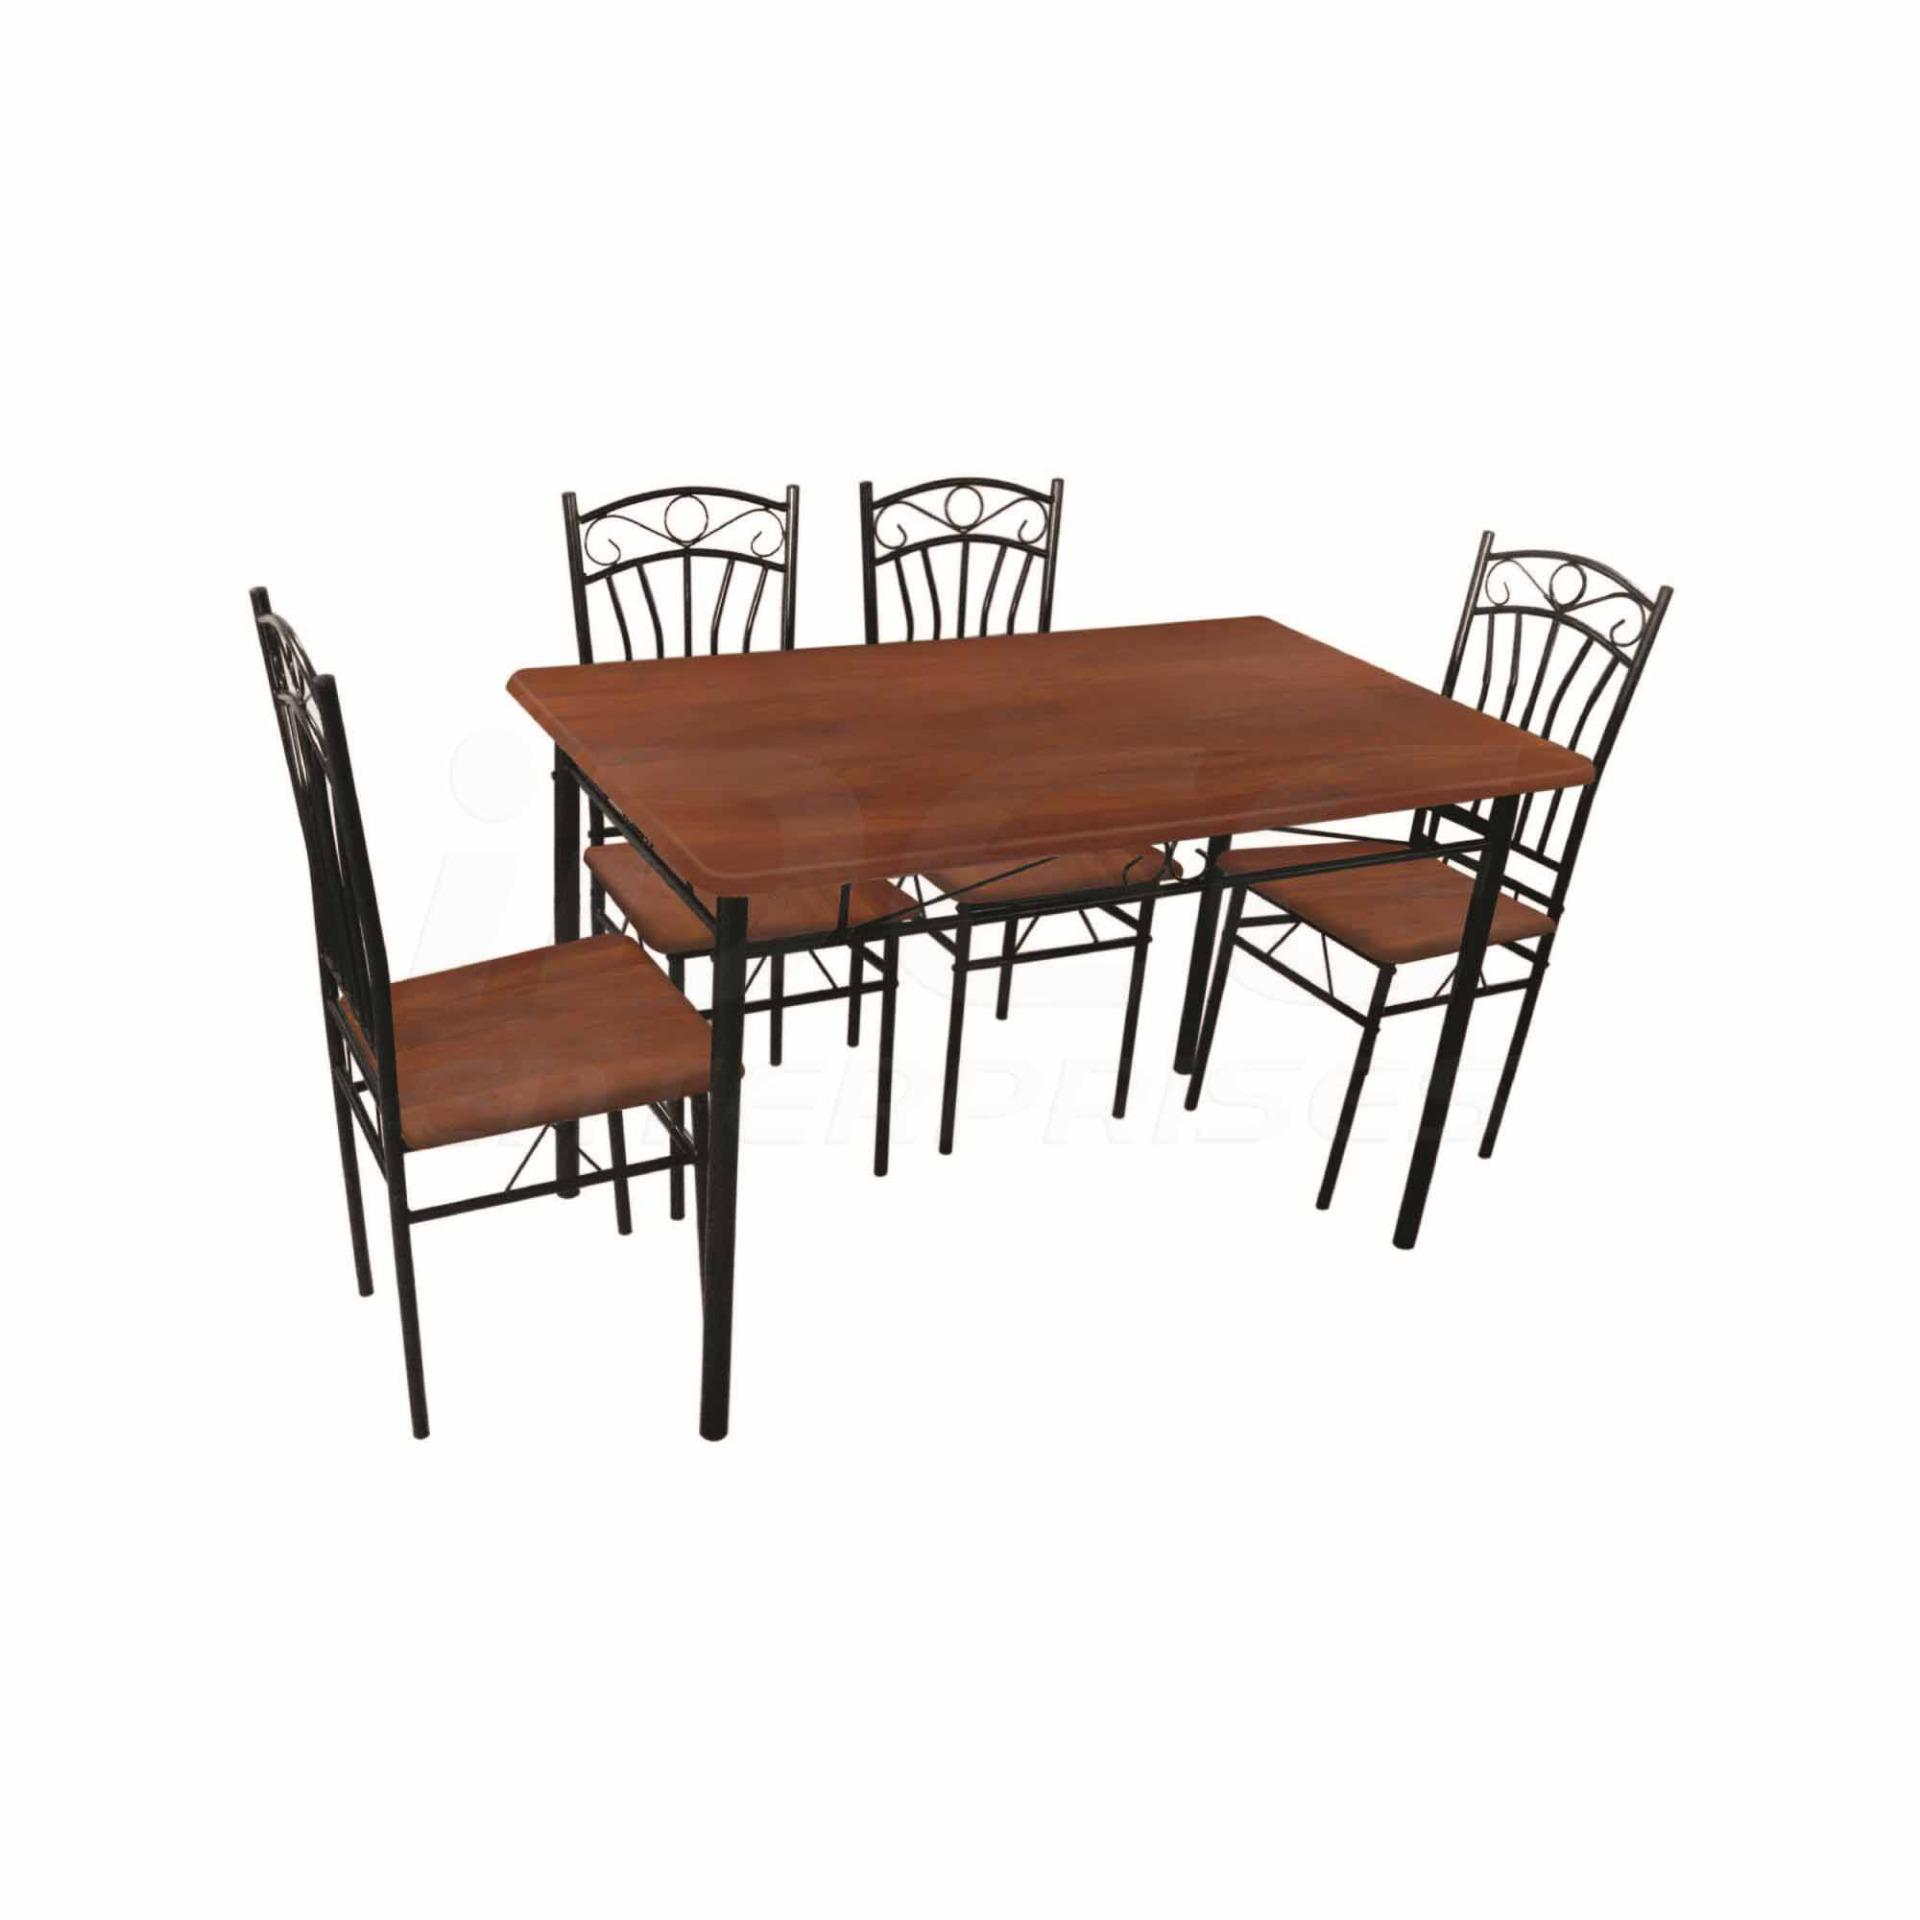 Tailee DS 022 4 Seater Dining Set Coffee